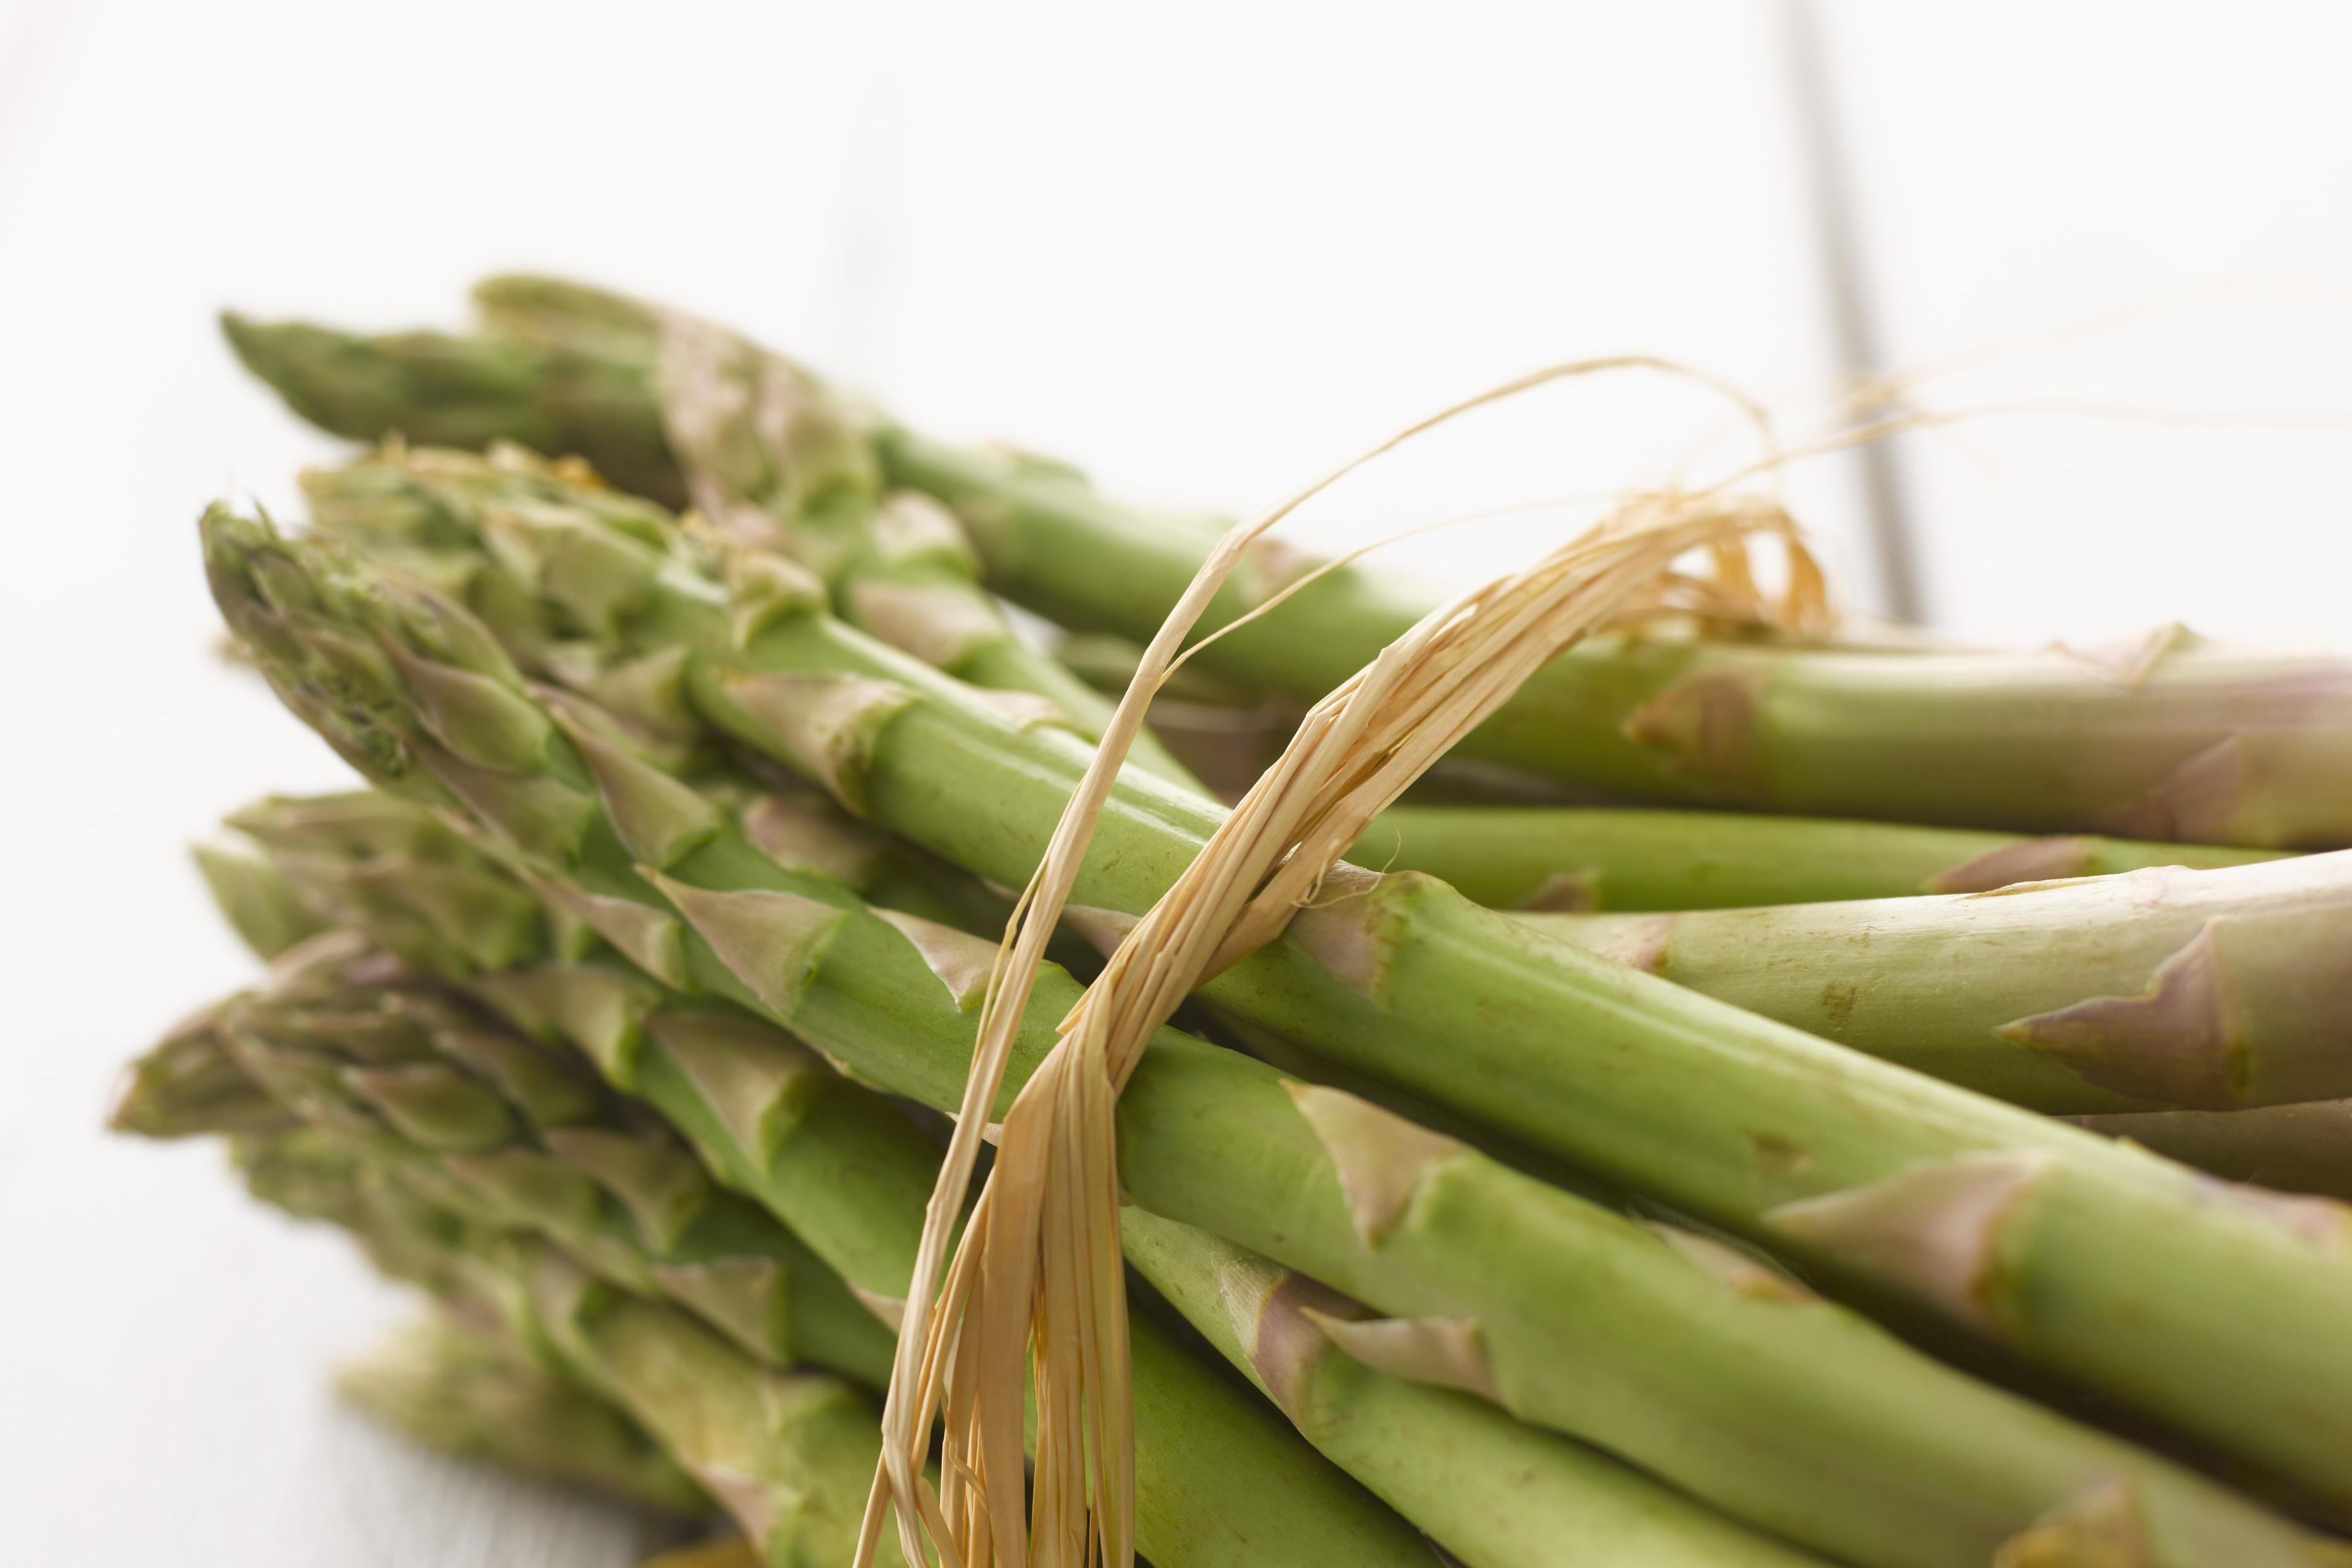 why does eating asparagus make urine smell bad